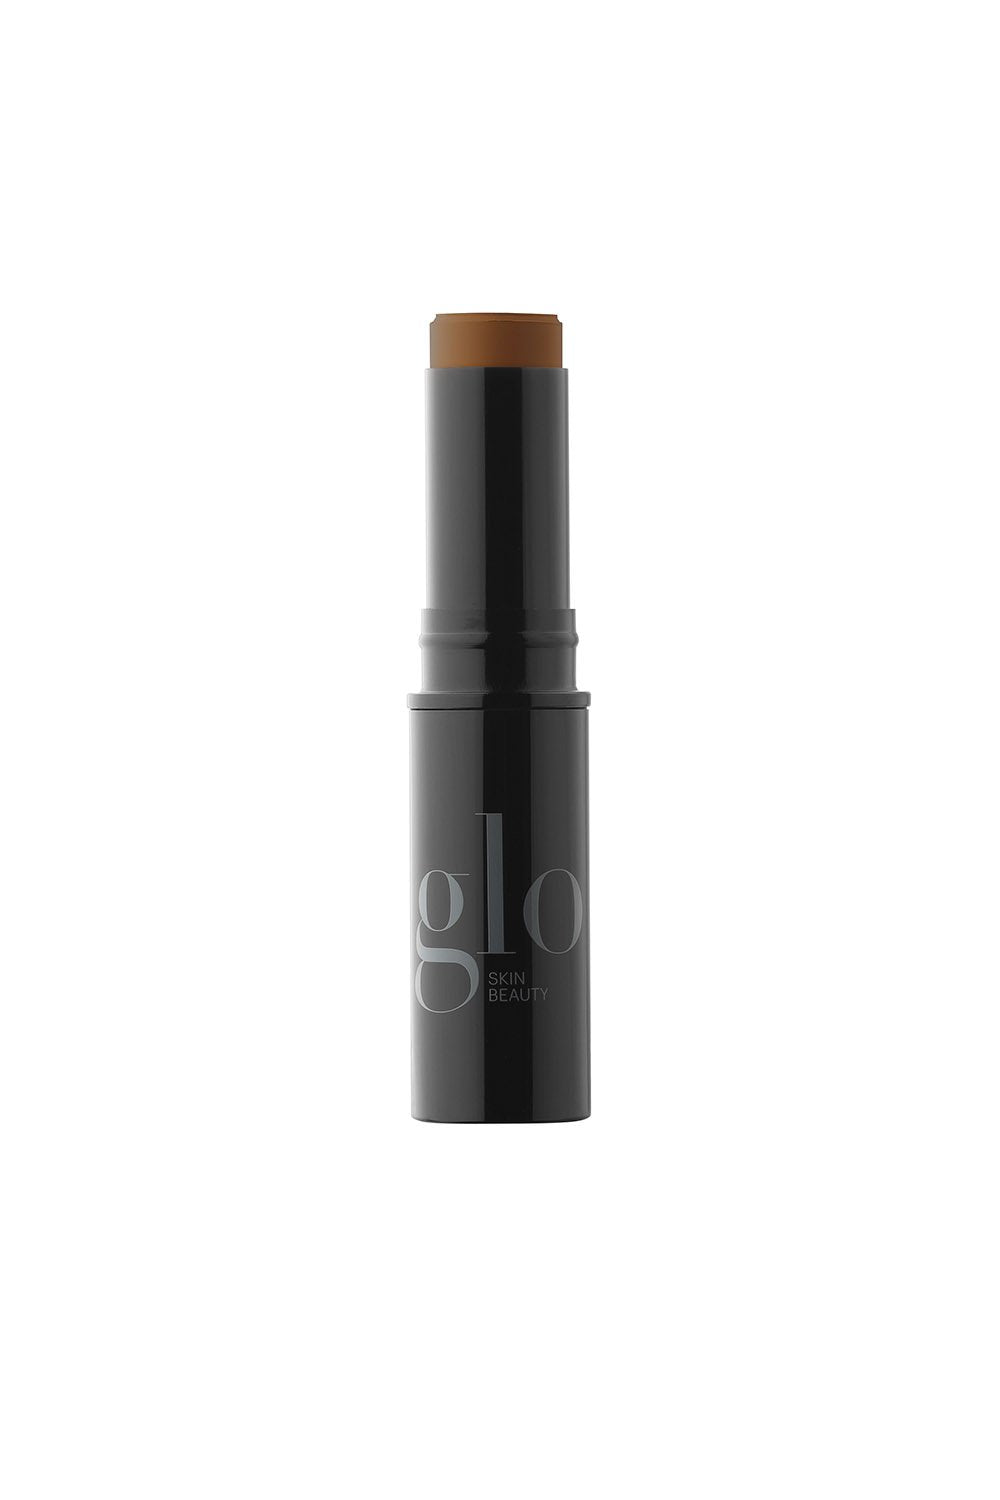 202-2-334 HD Mineral Foundation Stick - Umber 11W - Tester